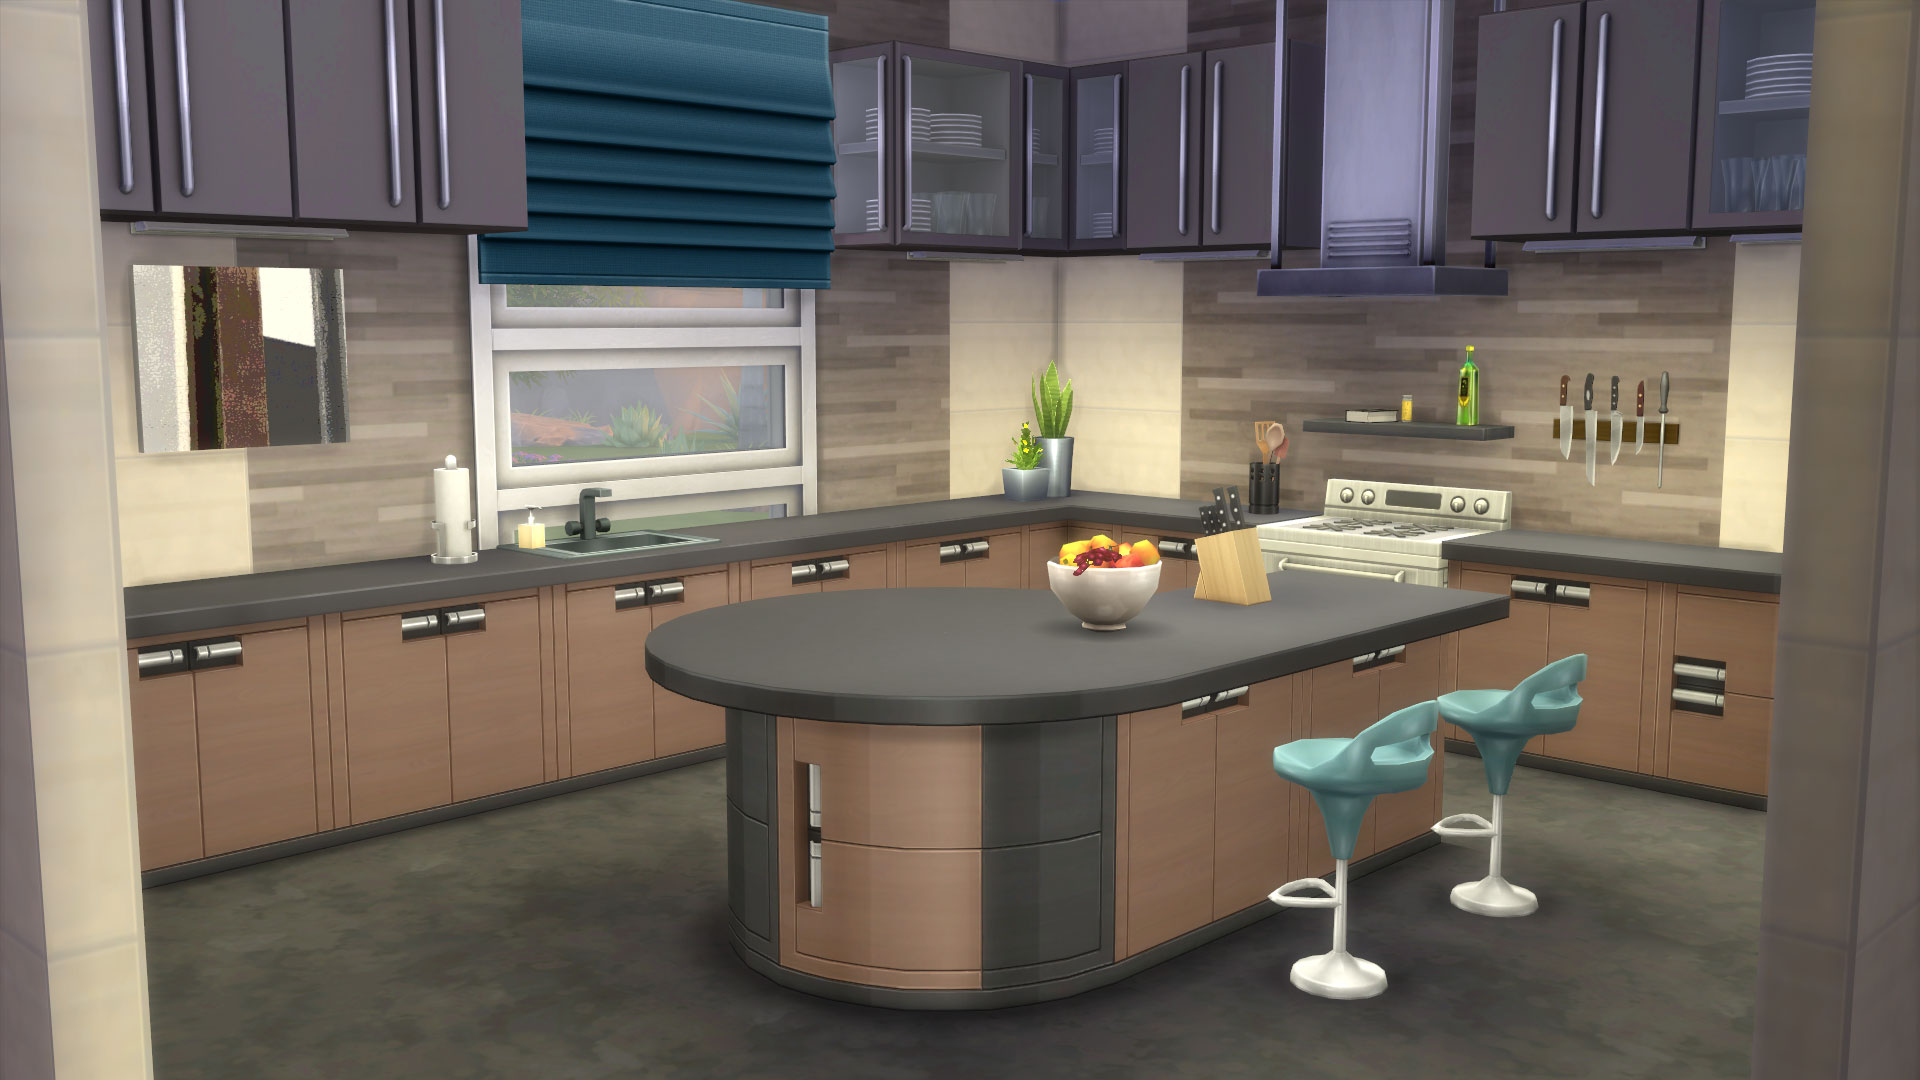 The sims 4 community blog ruthless kk on amazing kitchens for Sims 4 kitchen designs